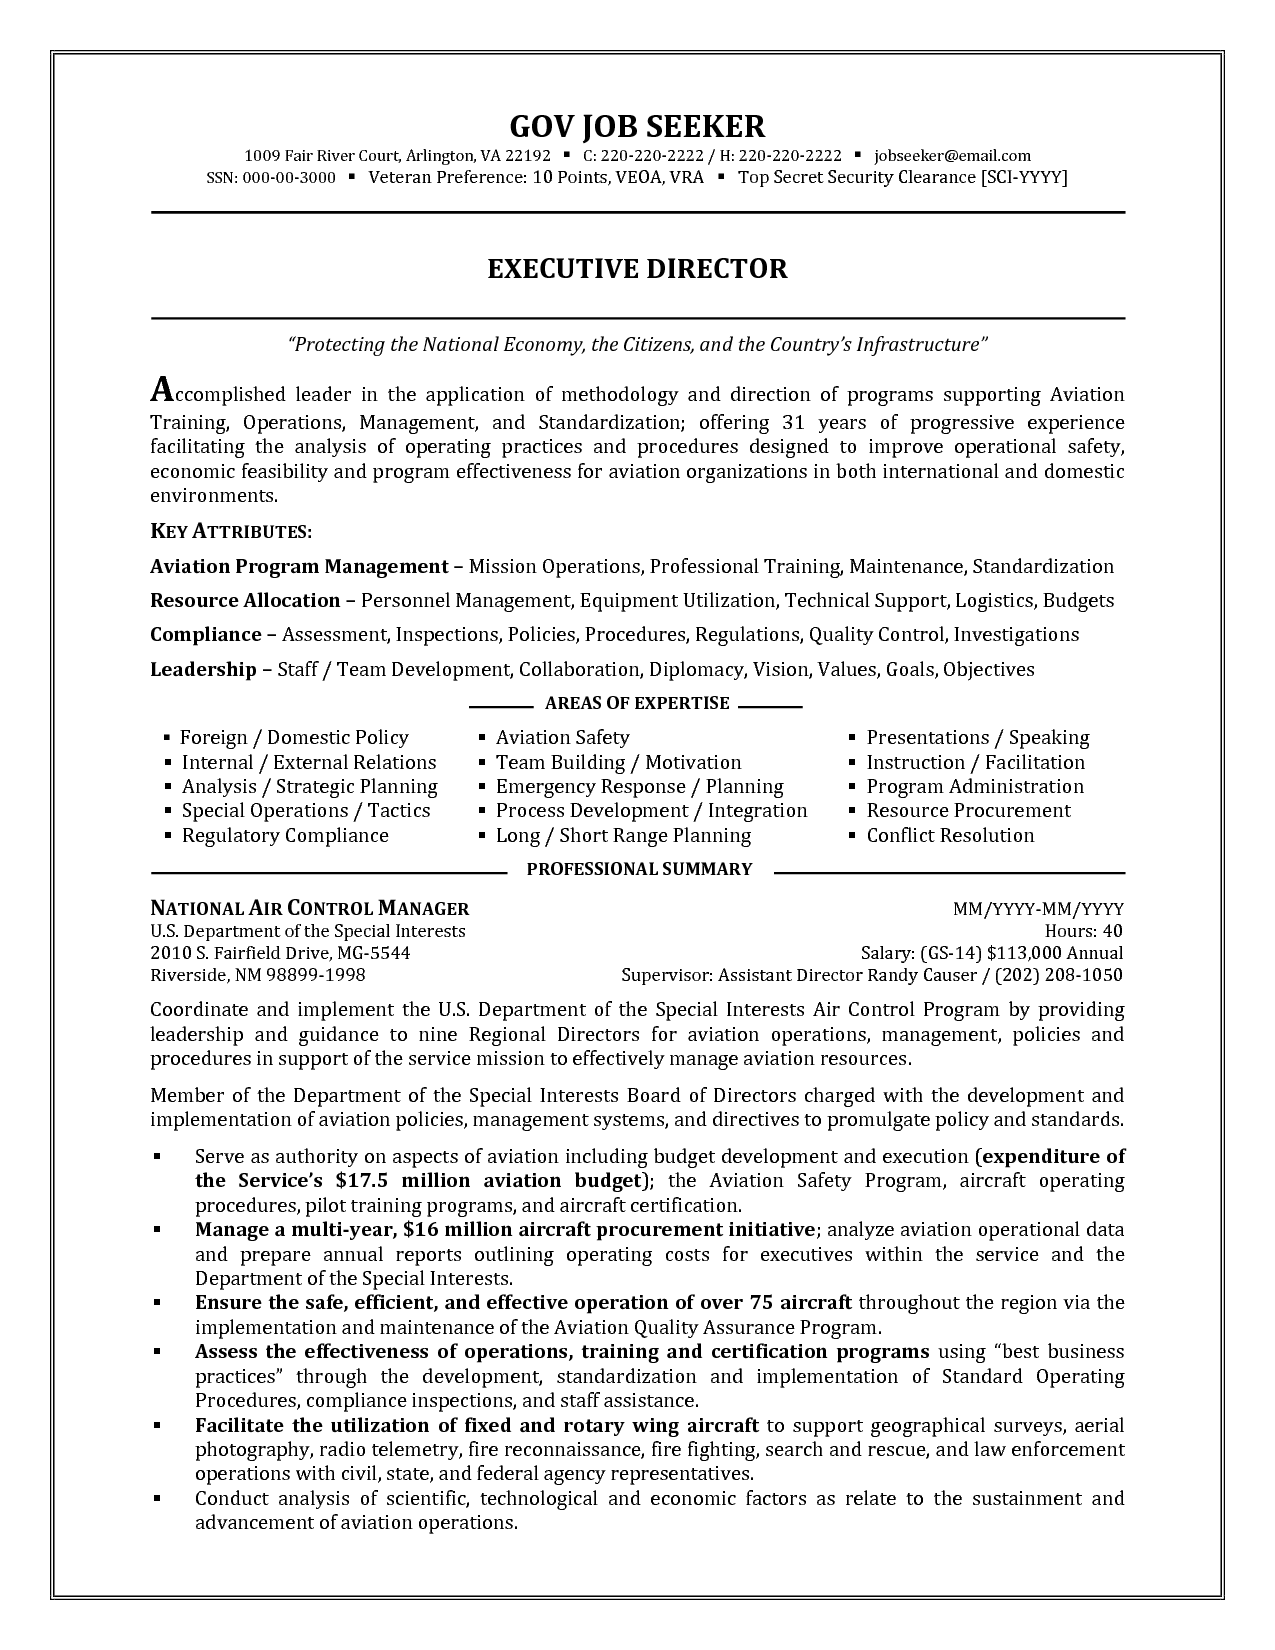 film production assistant resume template httpwwwresumecareerinfo - Film Resume Format